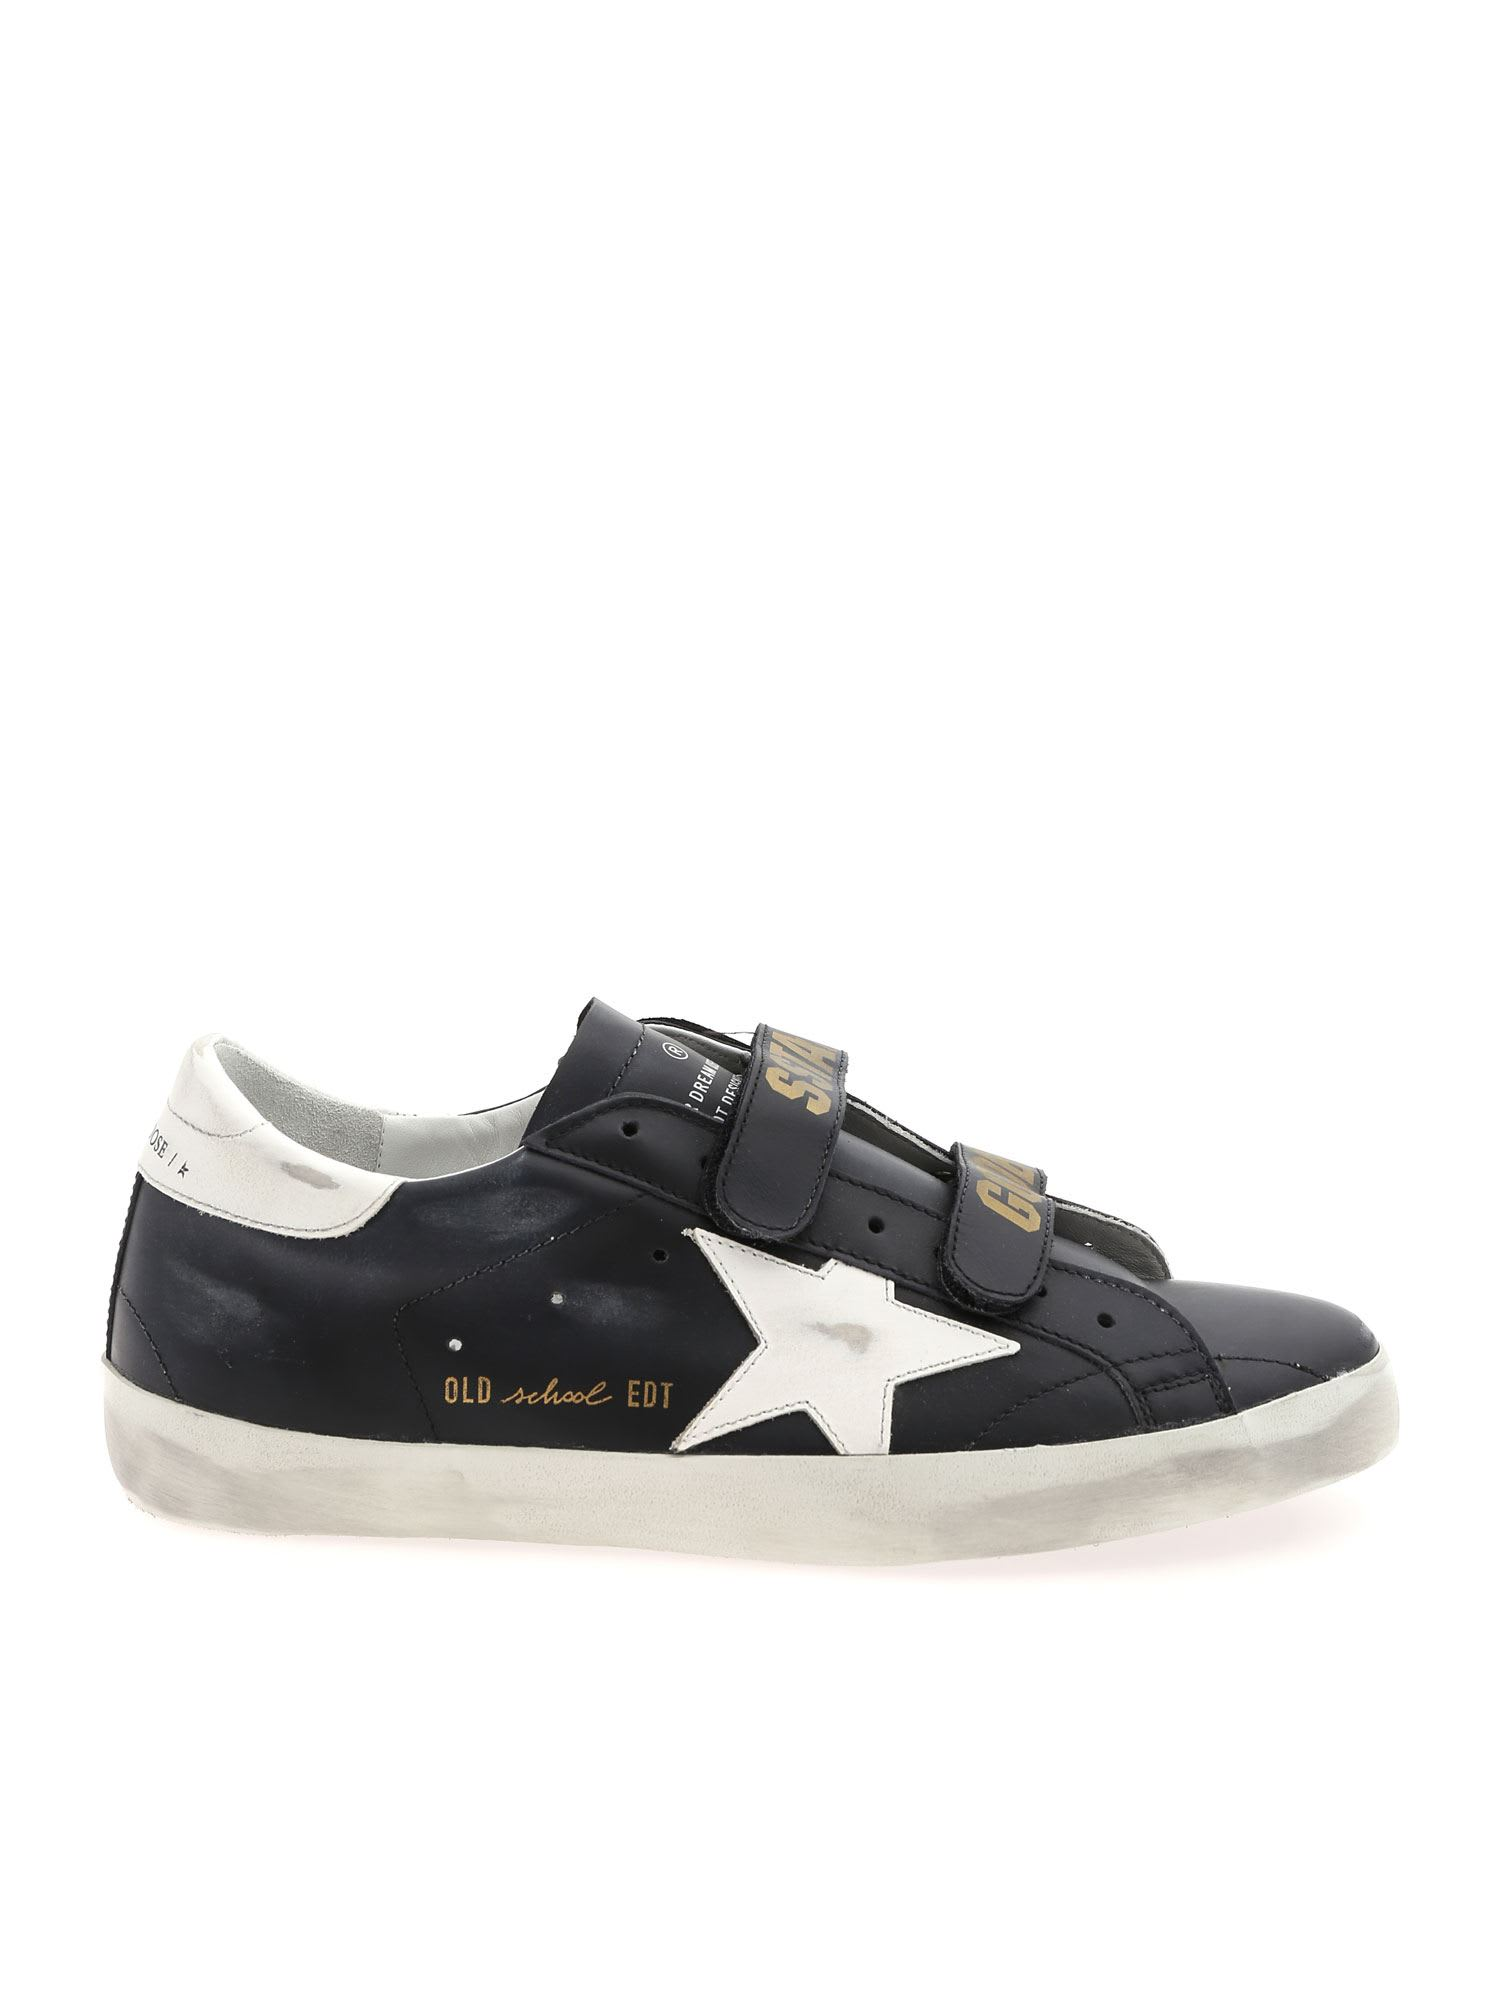 Golden Goose Leathers SNEAKERS OLD SCHOOL